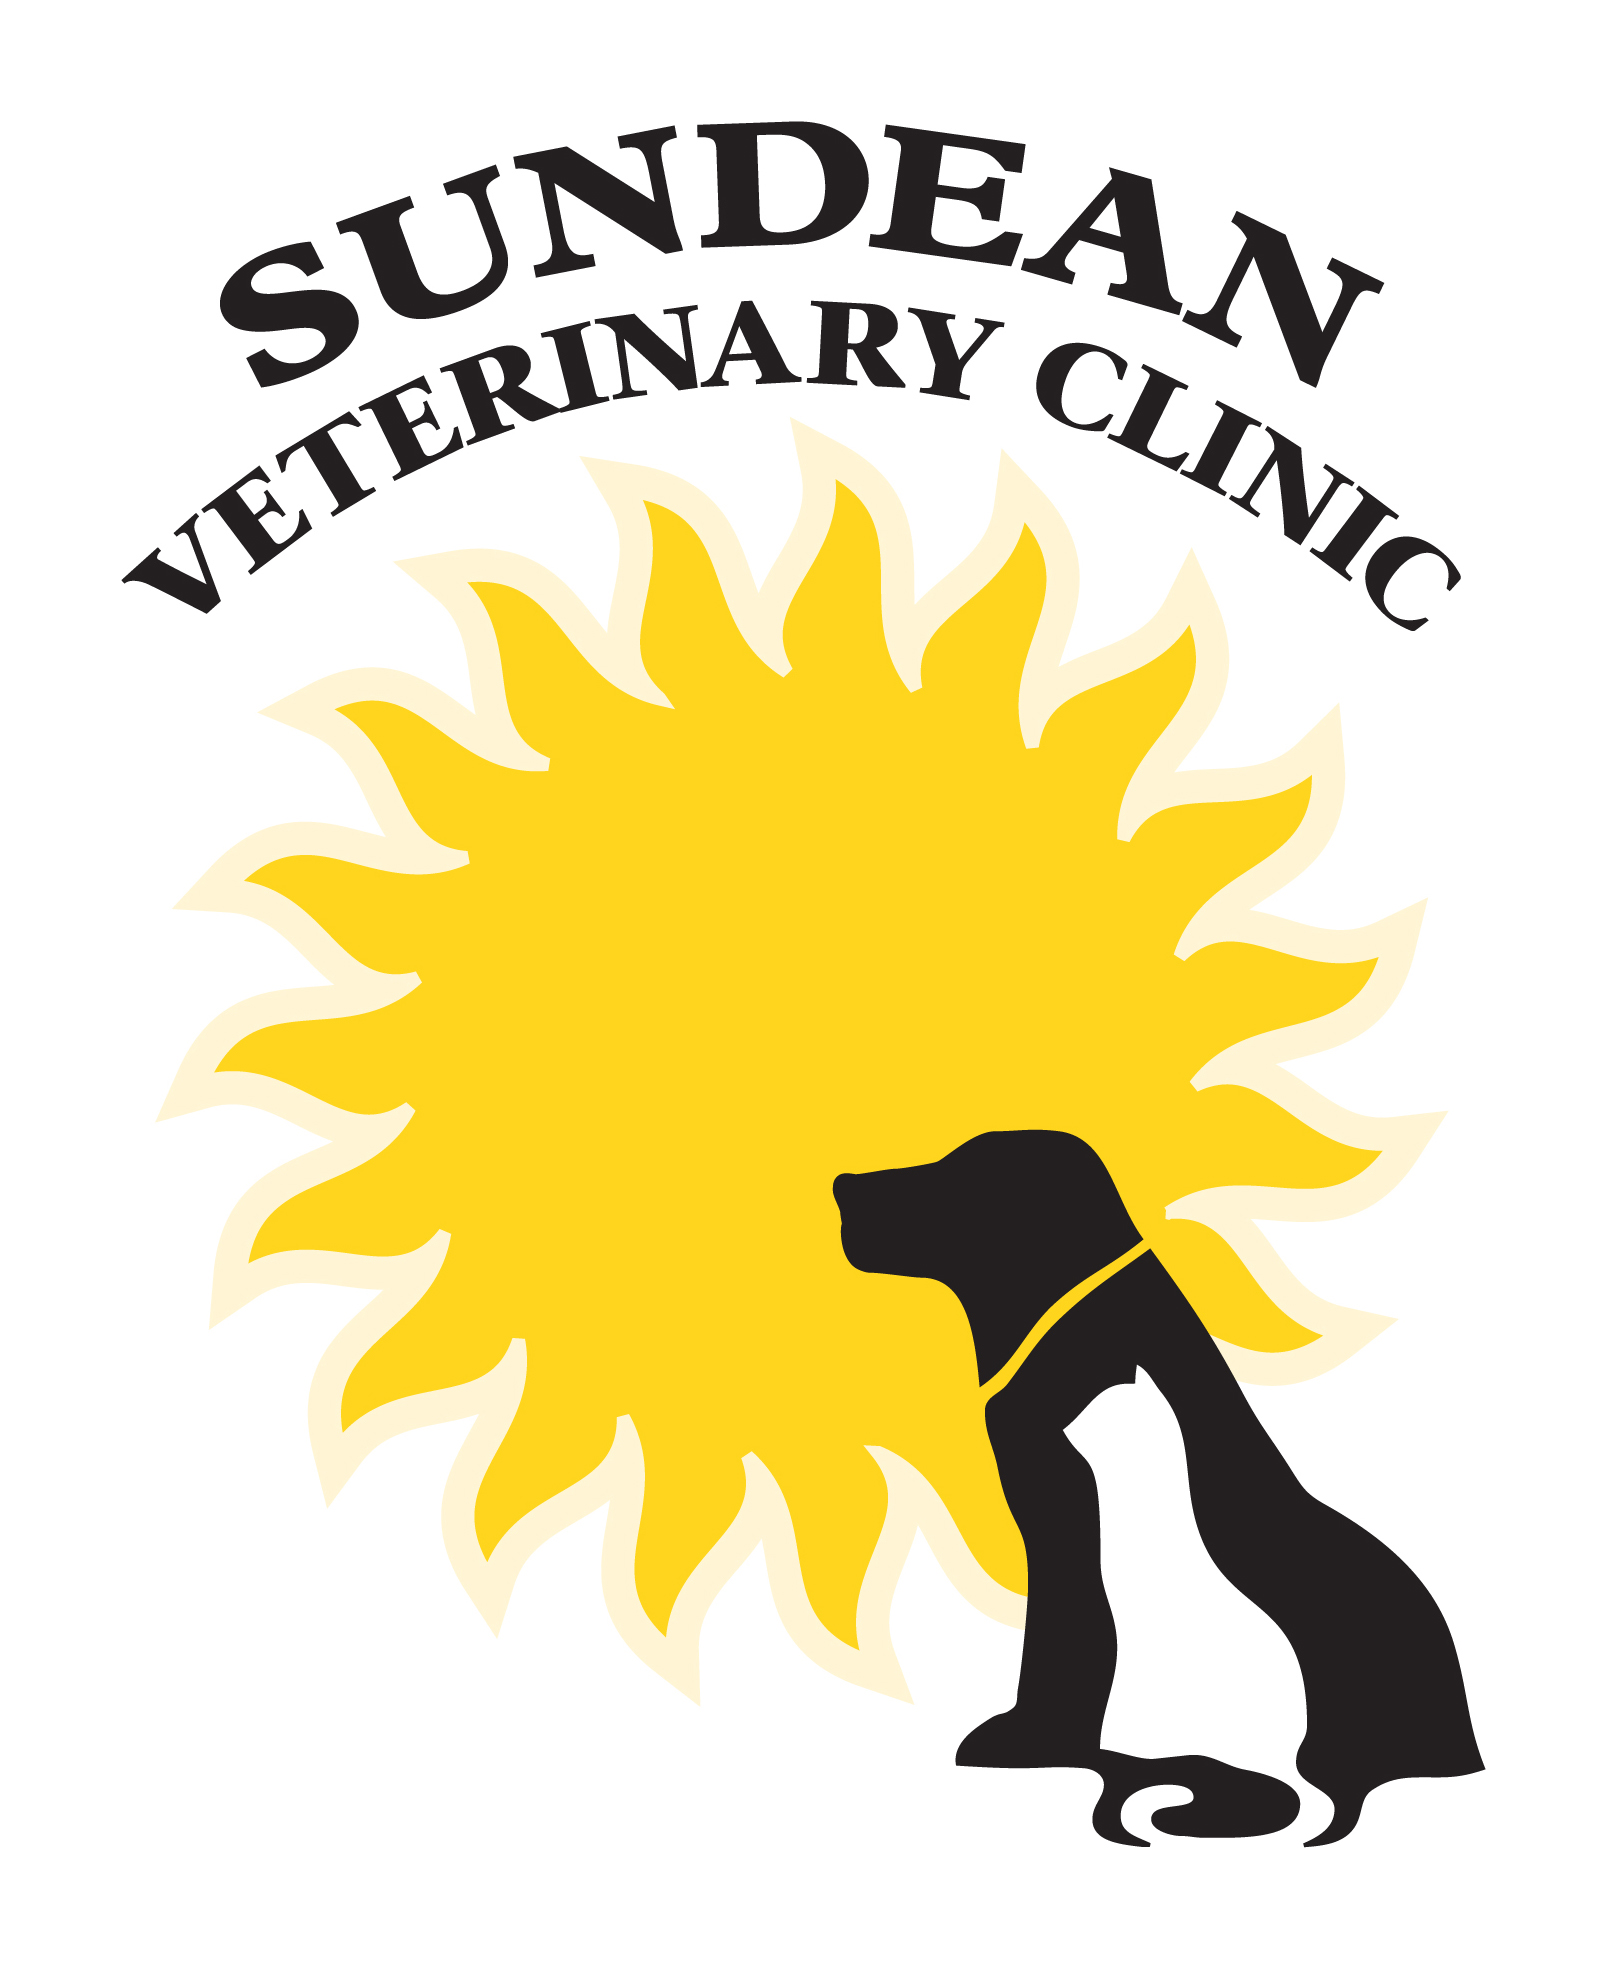 Sundean Veterinary Clinic